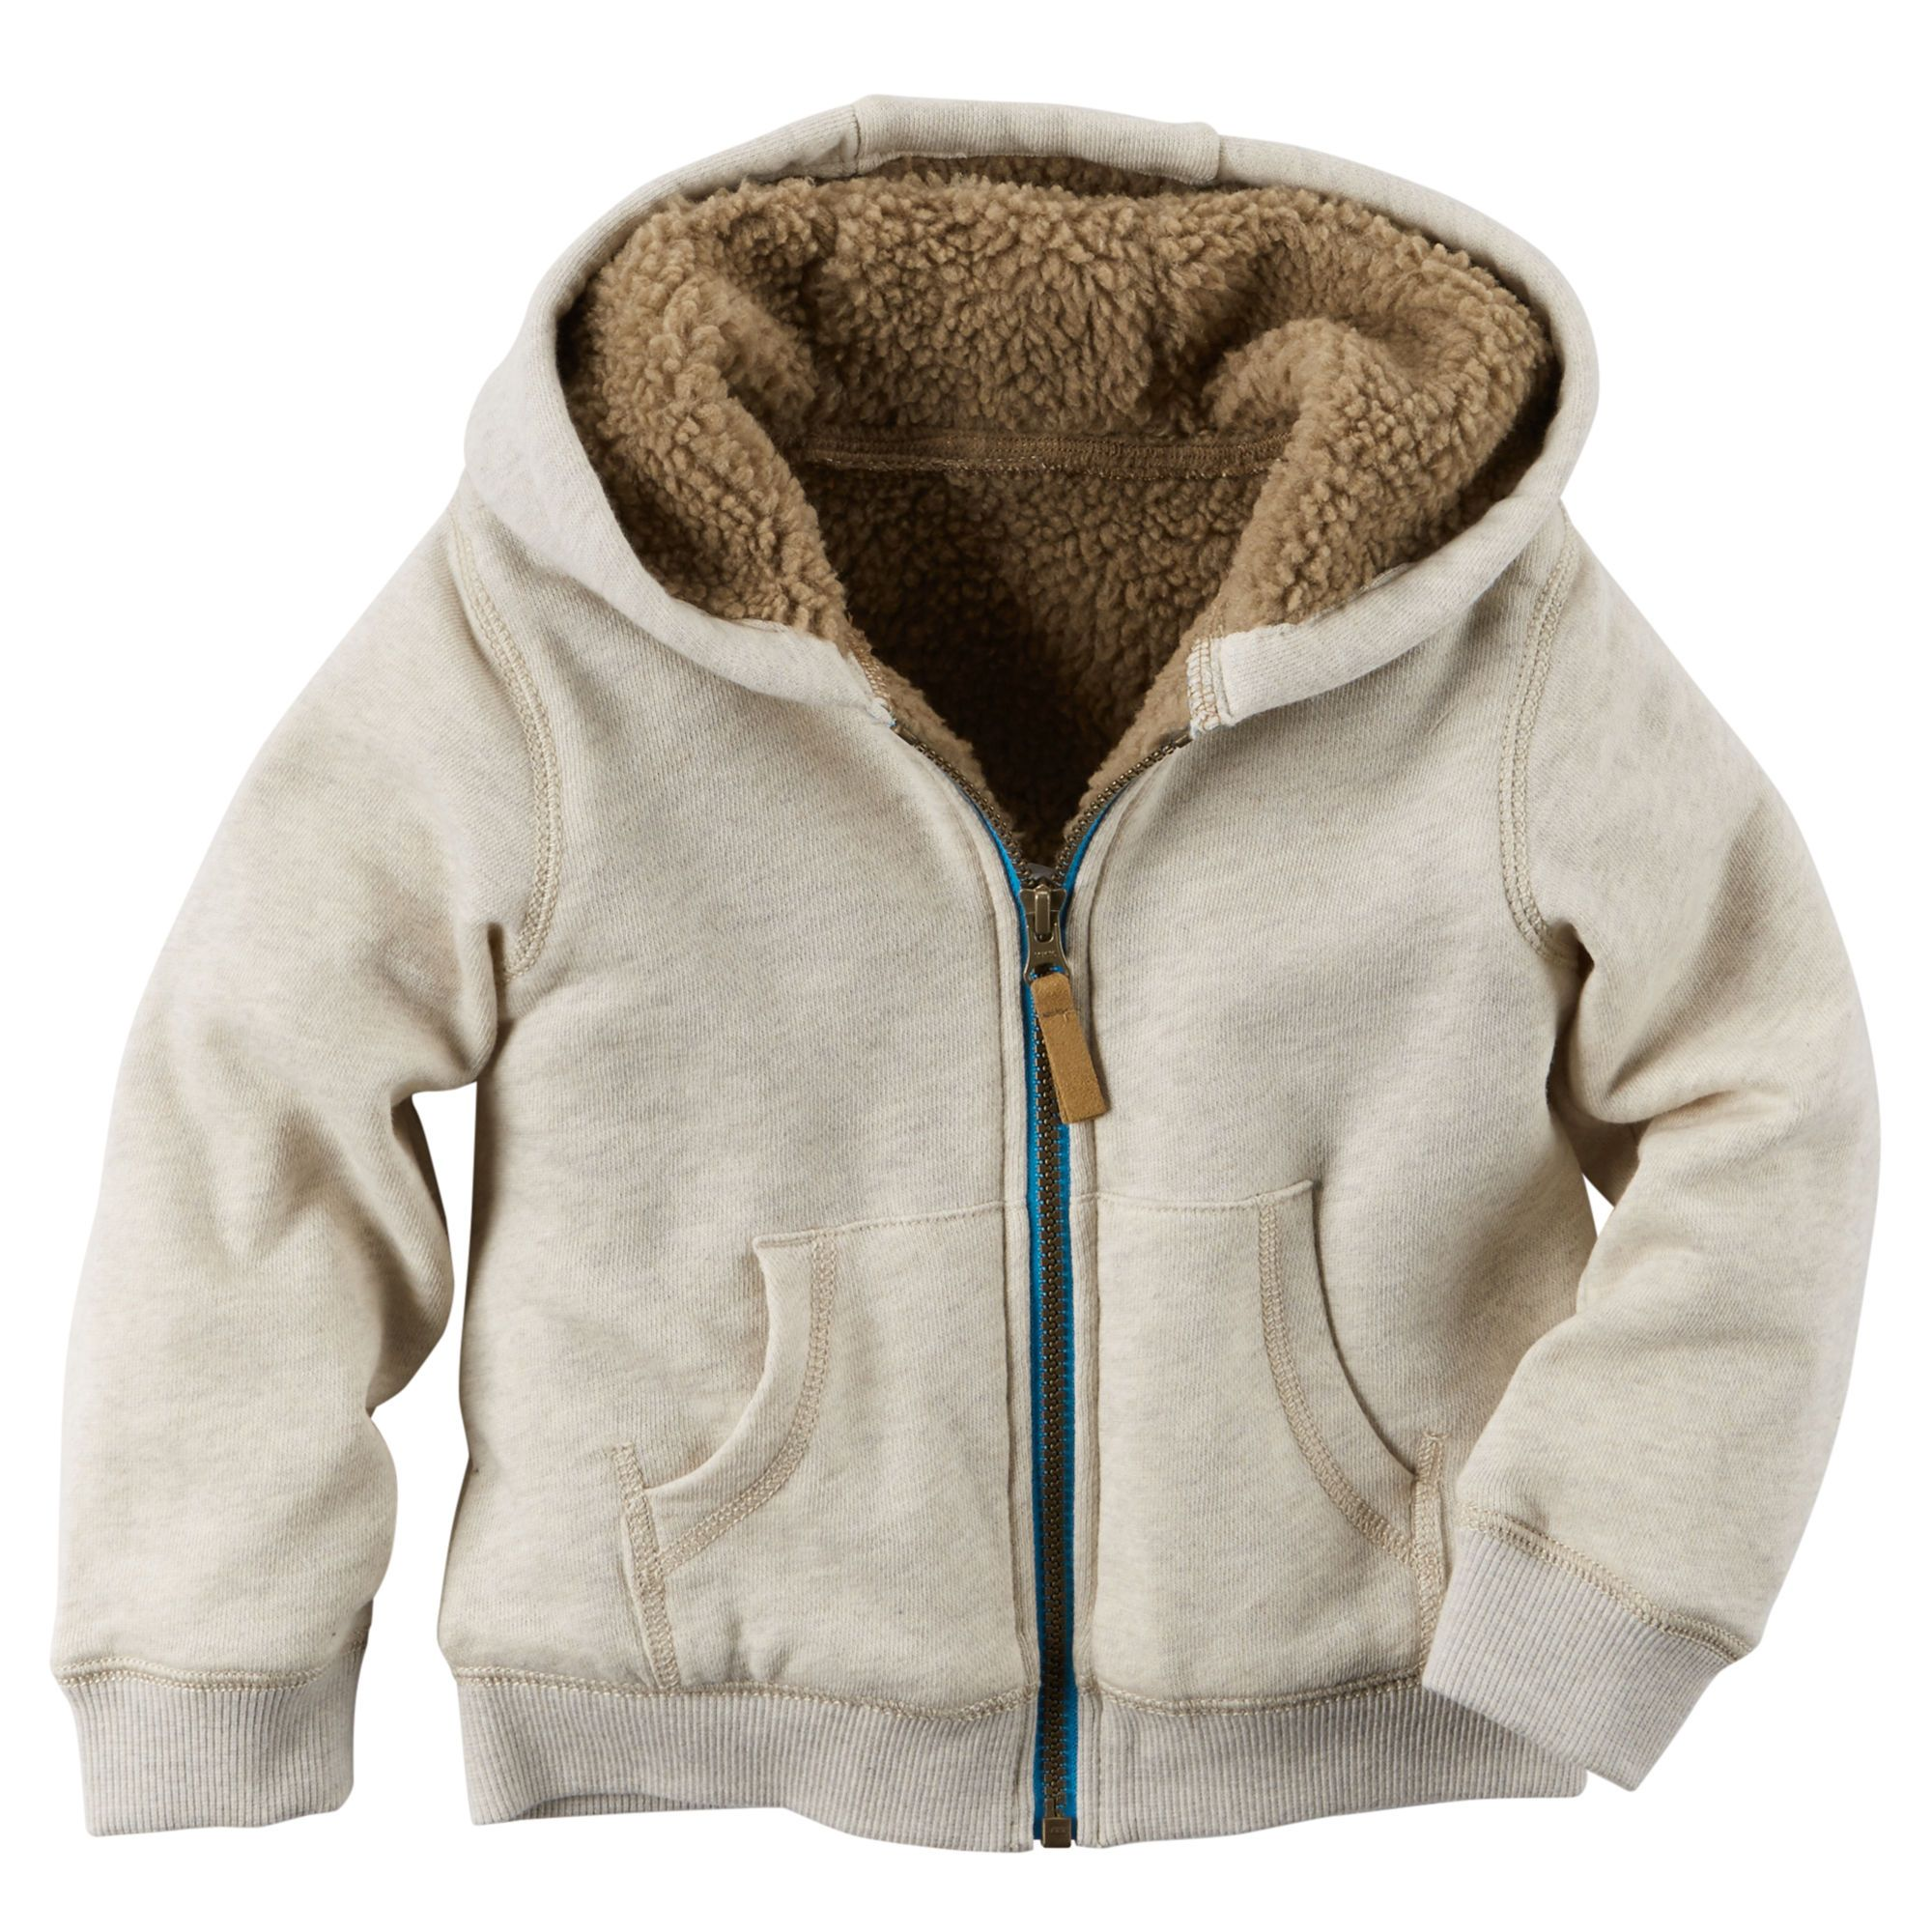 Baby Boy Sherpa Lined Hoodie Carters Com Style Fashion